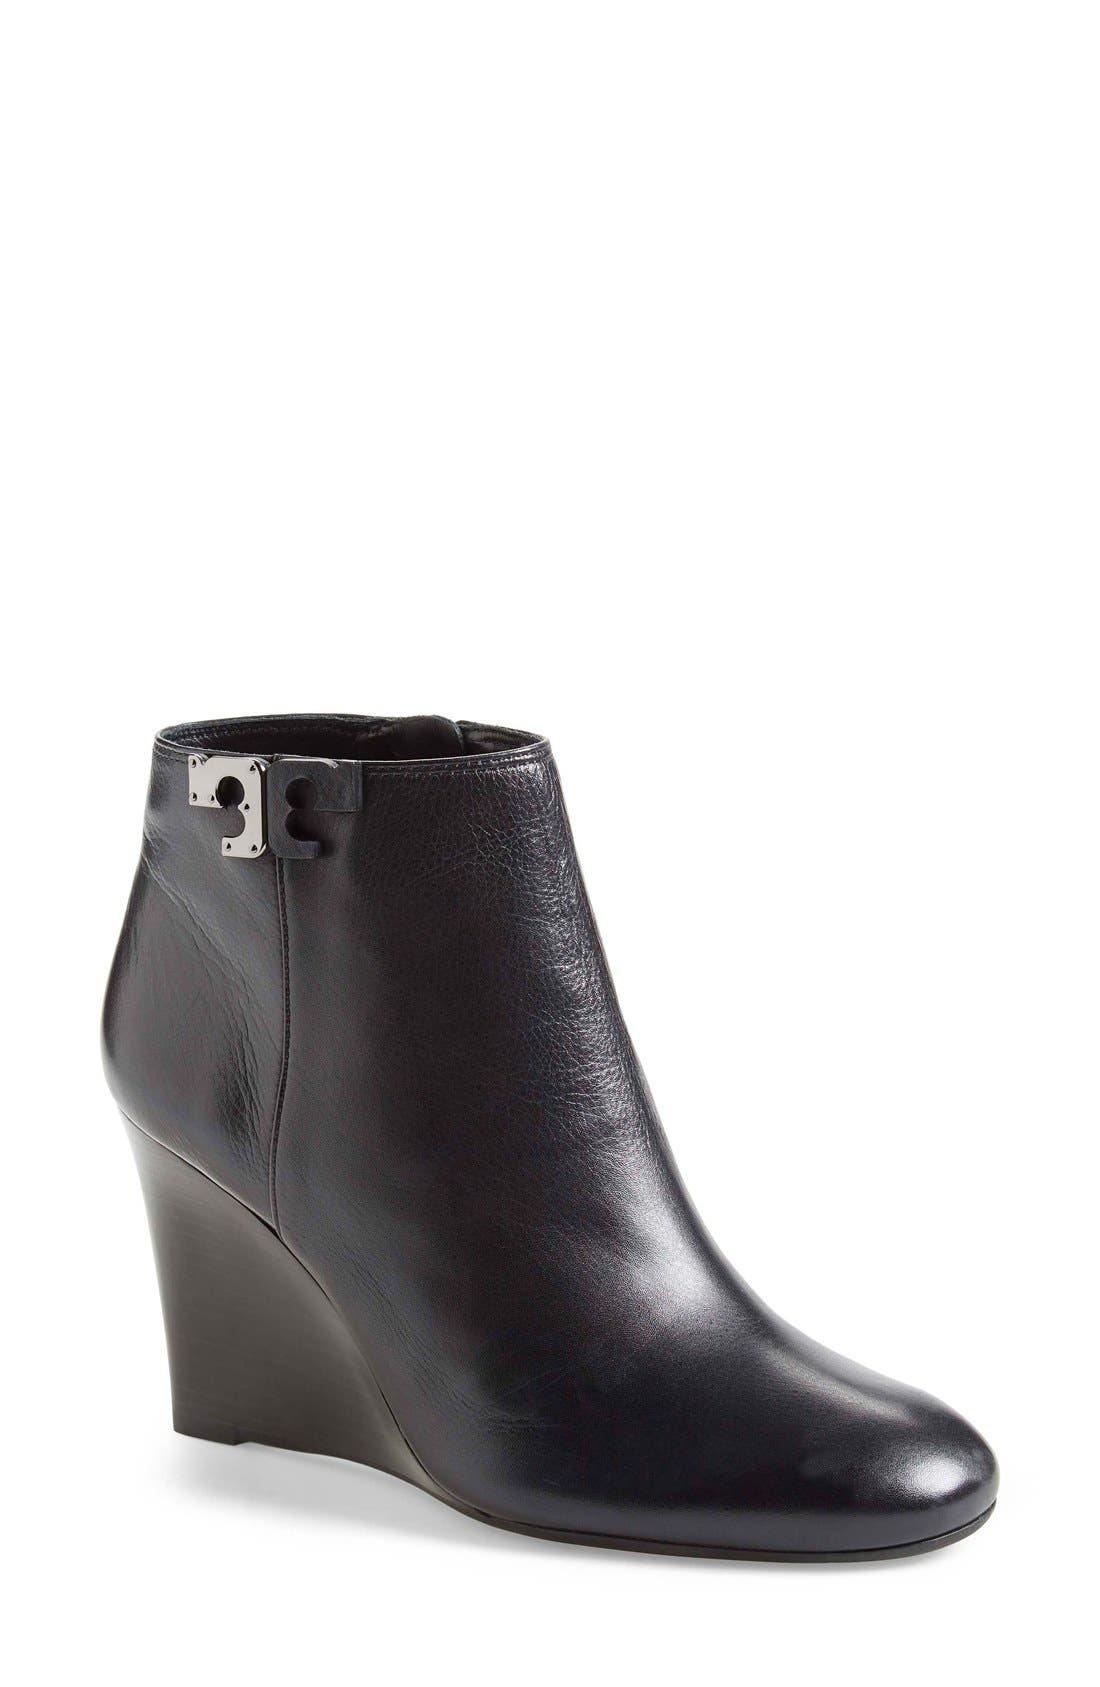 'Lowell' Wedge Bootie,                             Main thumbnail 1, color,                             001